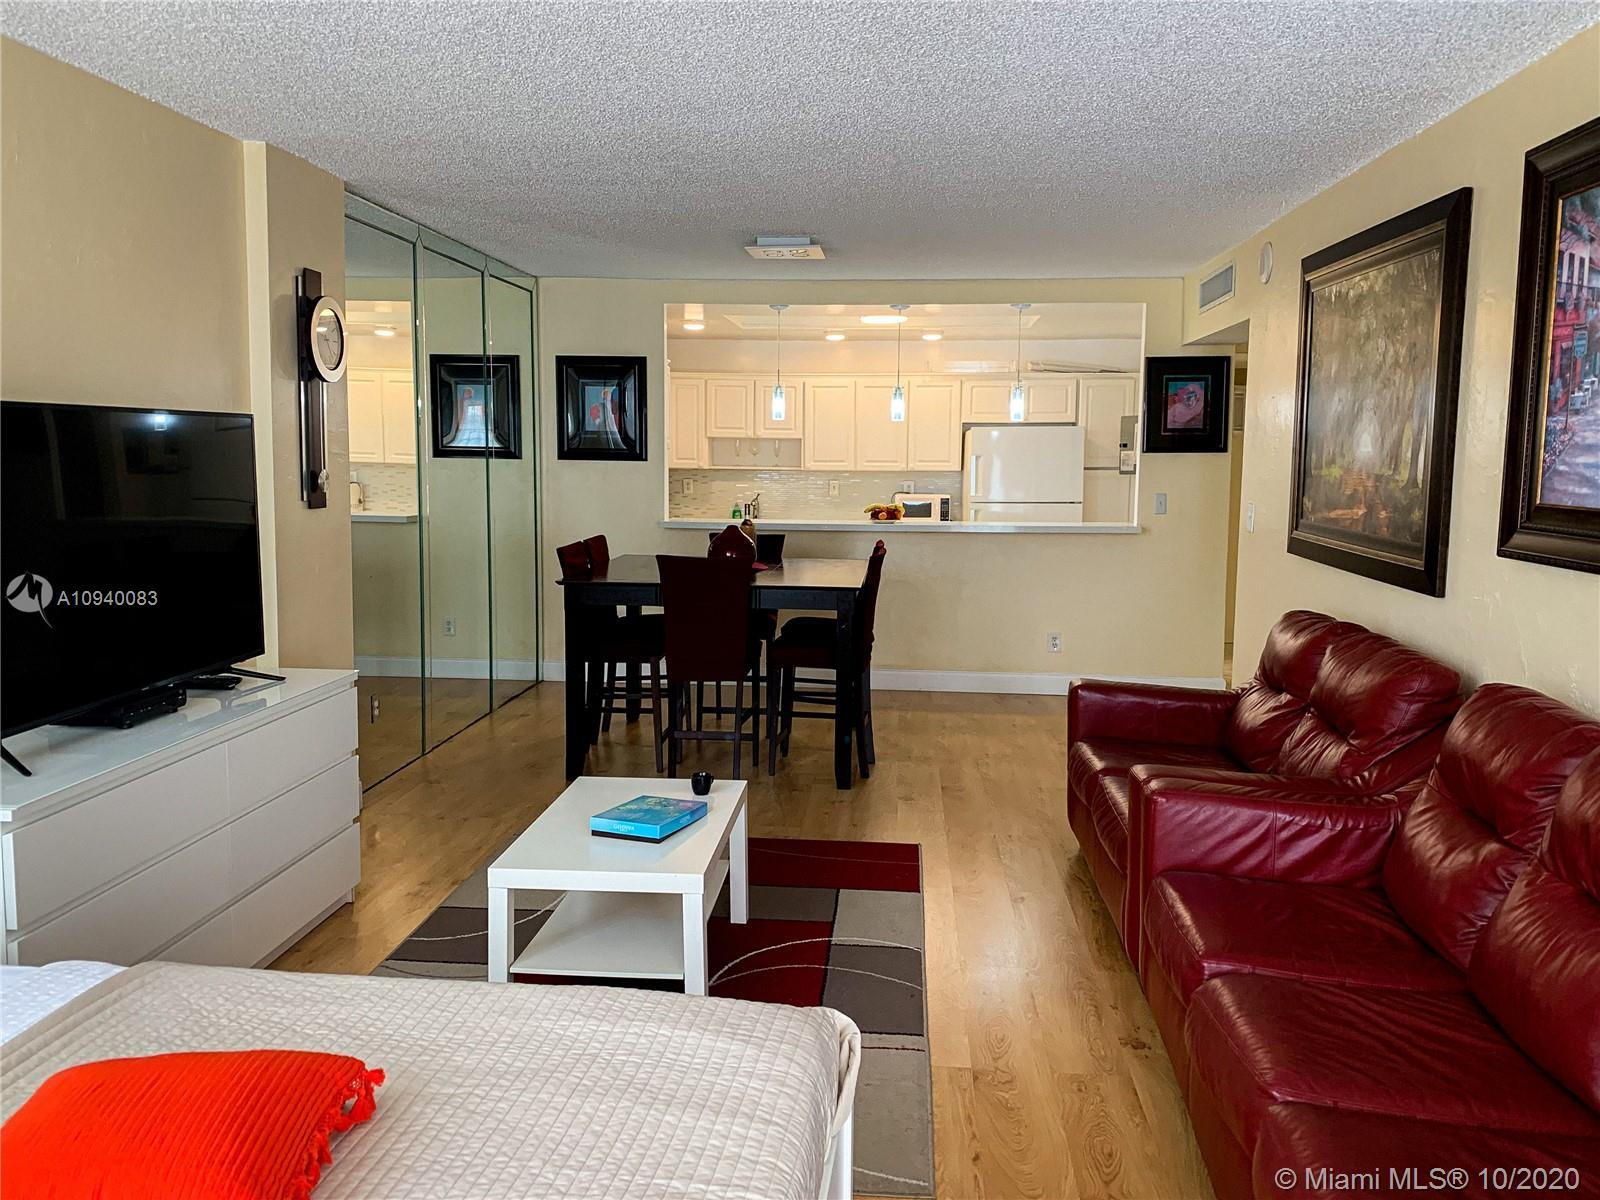 2 BED 2 BATH HUGE UNIT IN OCEAN RESERVE BUILDING .BEAUTIFUL VIEWS  INTRACOSTAL FROM BALCONY.FULL SER